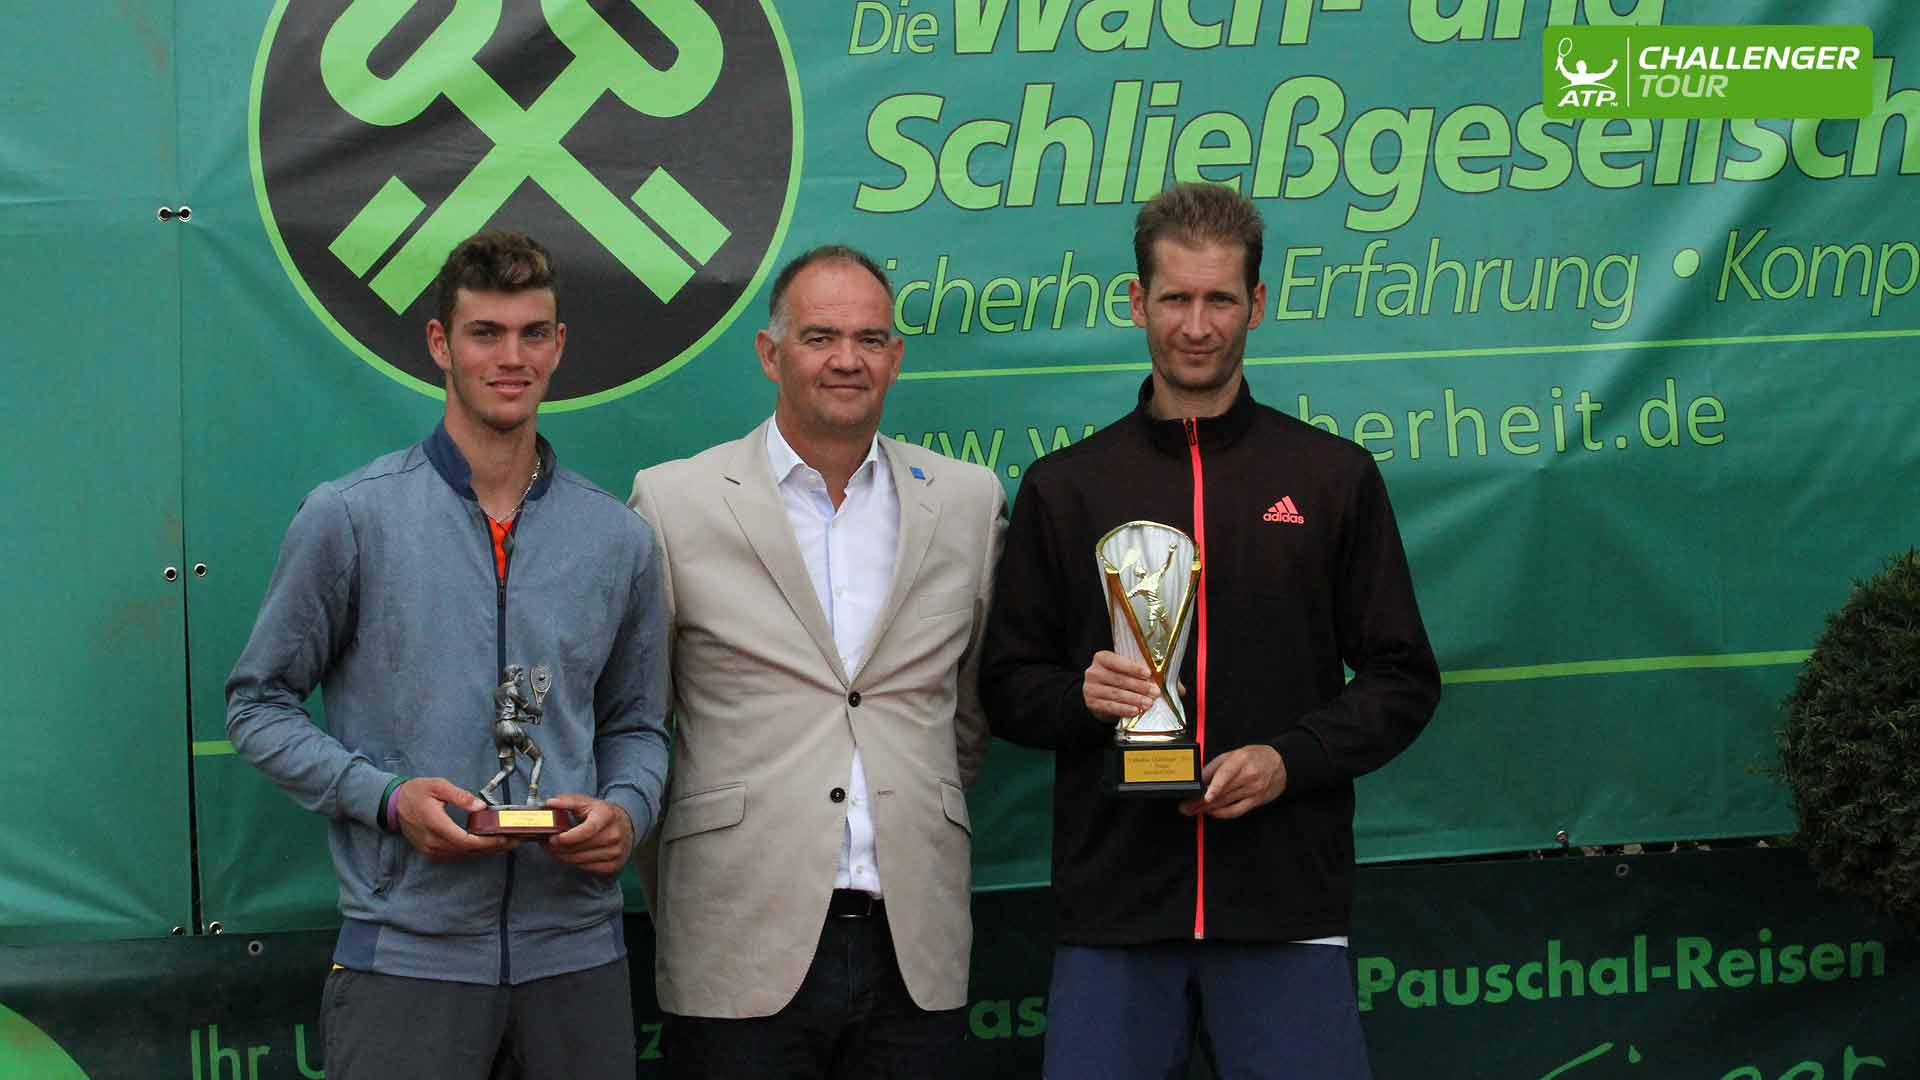 Florian Mayer defeats Maximilian Marterer to win the ATP Challenger Tour event in Meerbusch.